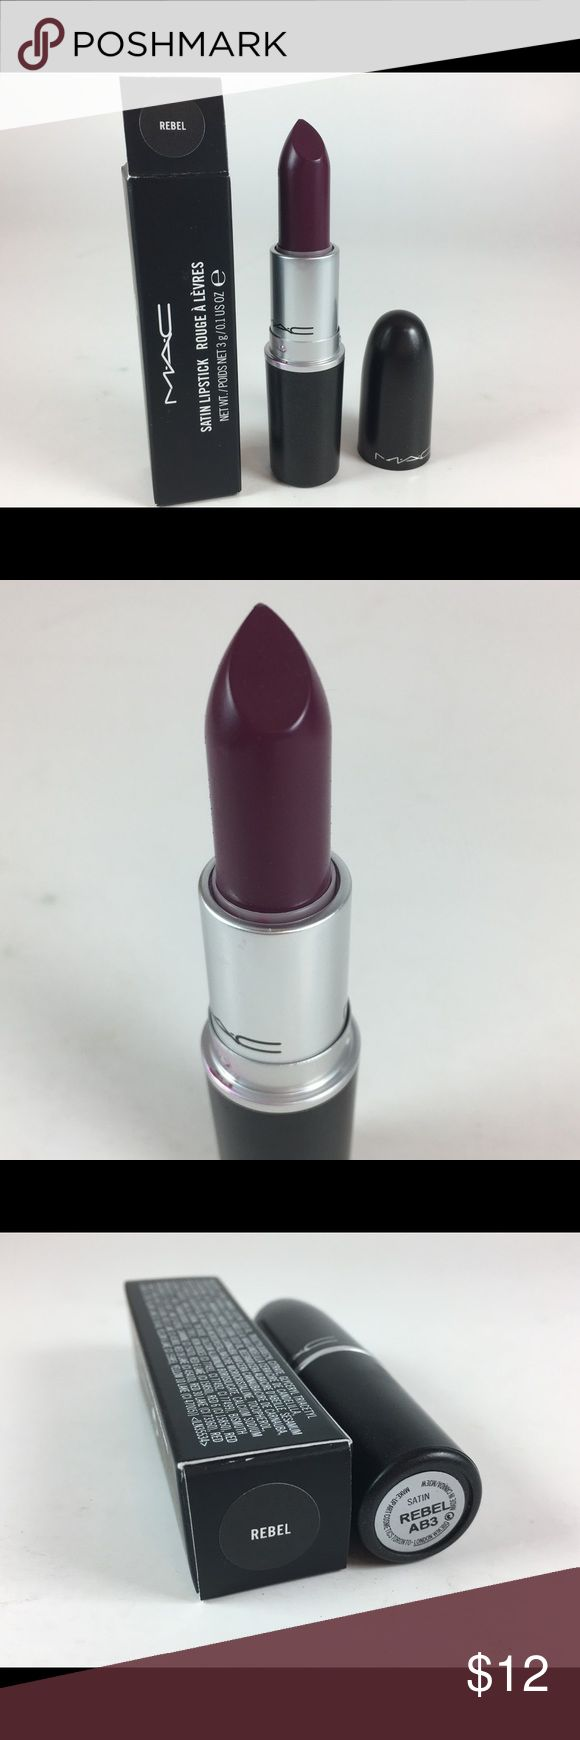 Mac Cosmetics BNIB Rebel lipstick Batch code: AB3 Mac Cosmetics BNIB Rebel lipstick  - Never used or tested. Satin finish. Please see pictures as this is the item you will receive.  Batch code: AB3 100% Authentic  Thank you! MAC Cosmetics Makeup Lipstick